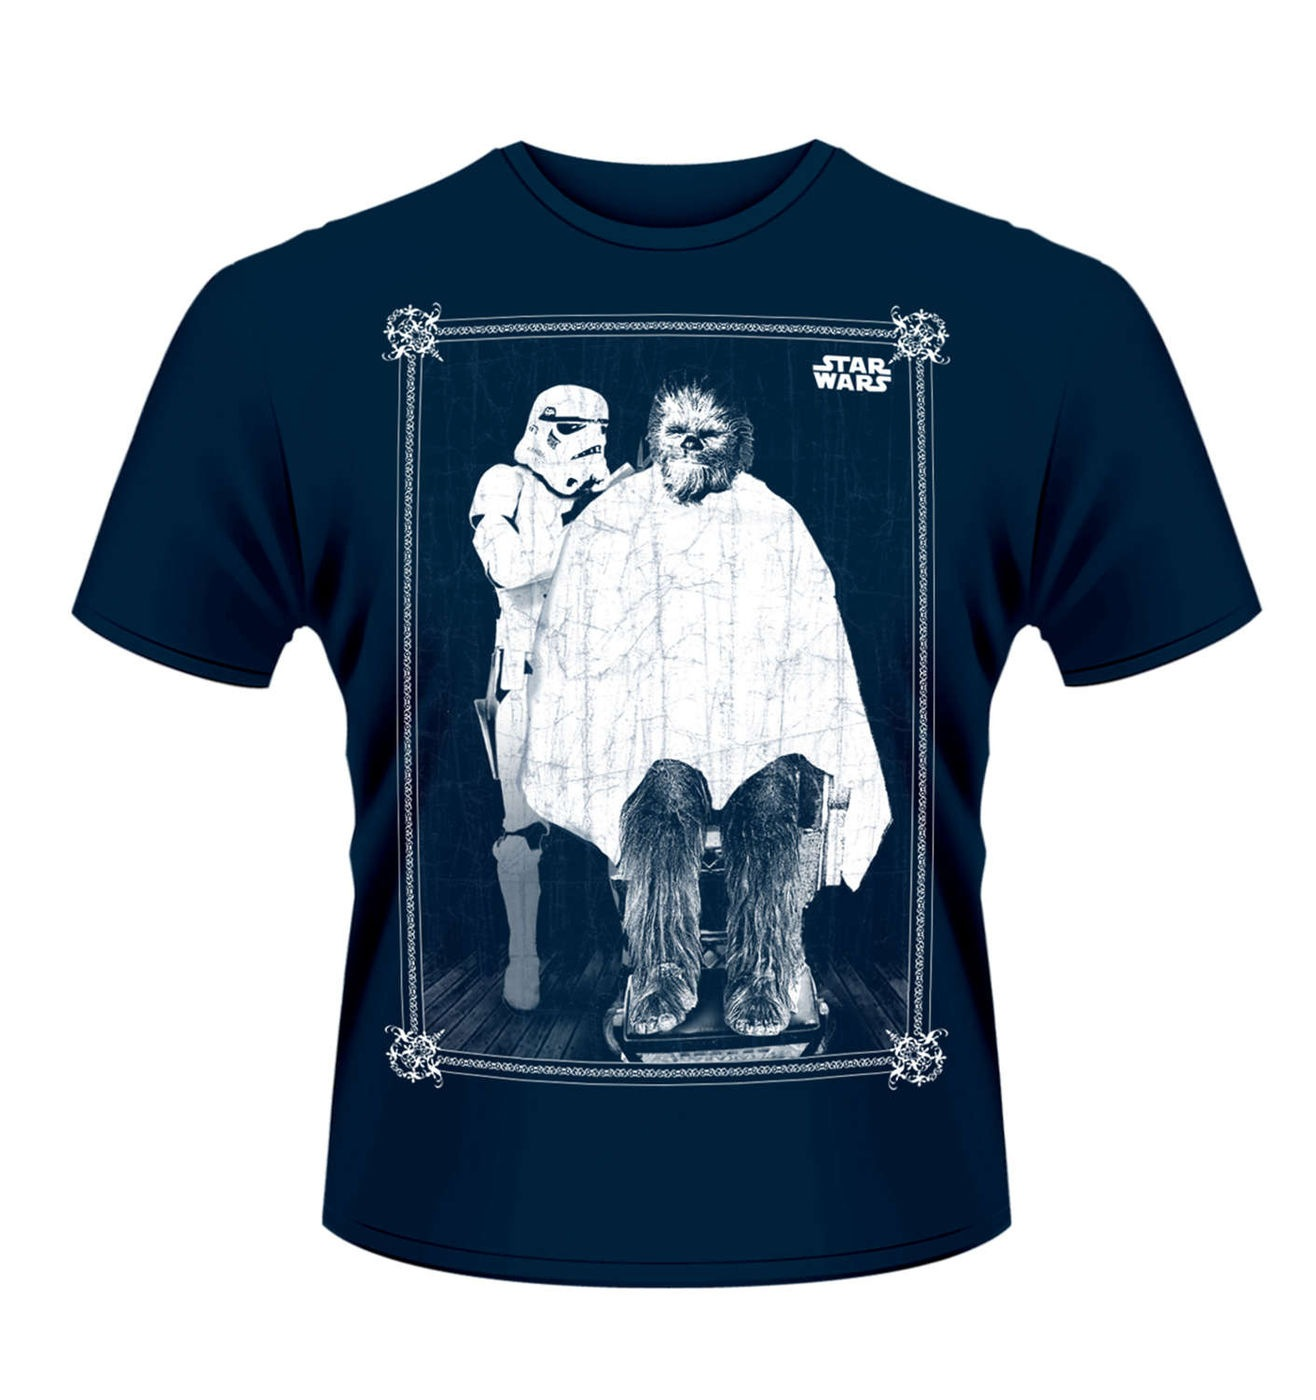 star wars chewbacca haircut t shirt official somethinggeeky. Black Bedroom Furniture Sets. Home Design Ideas